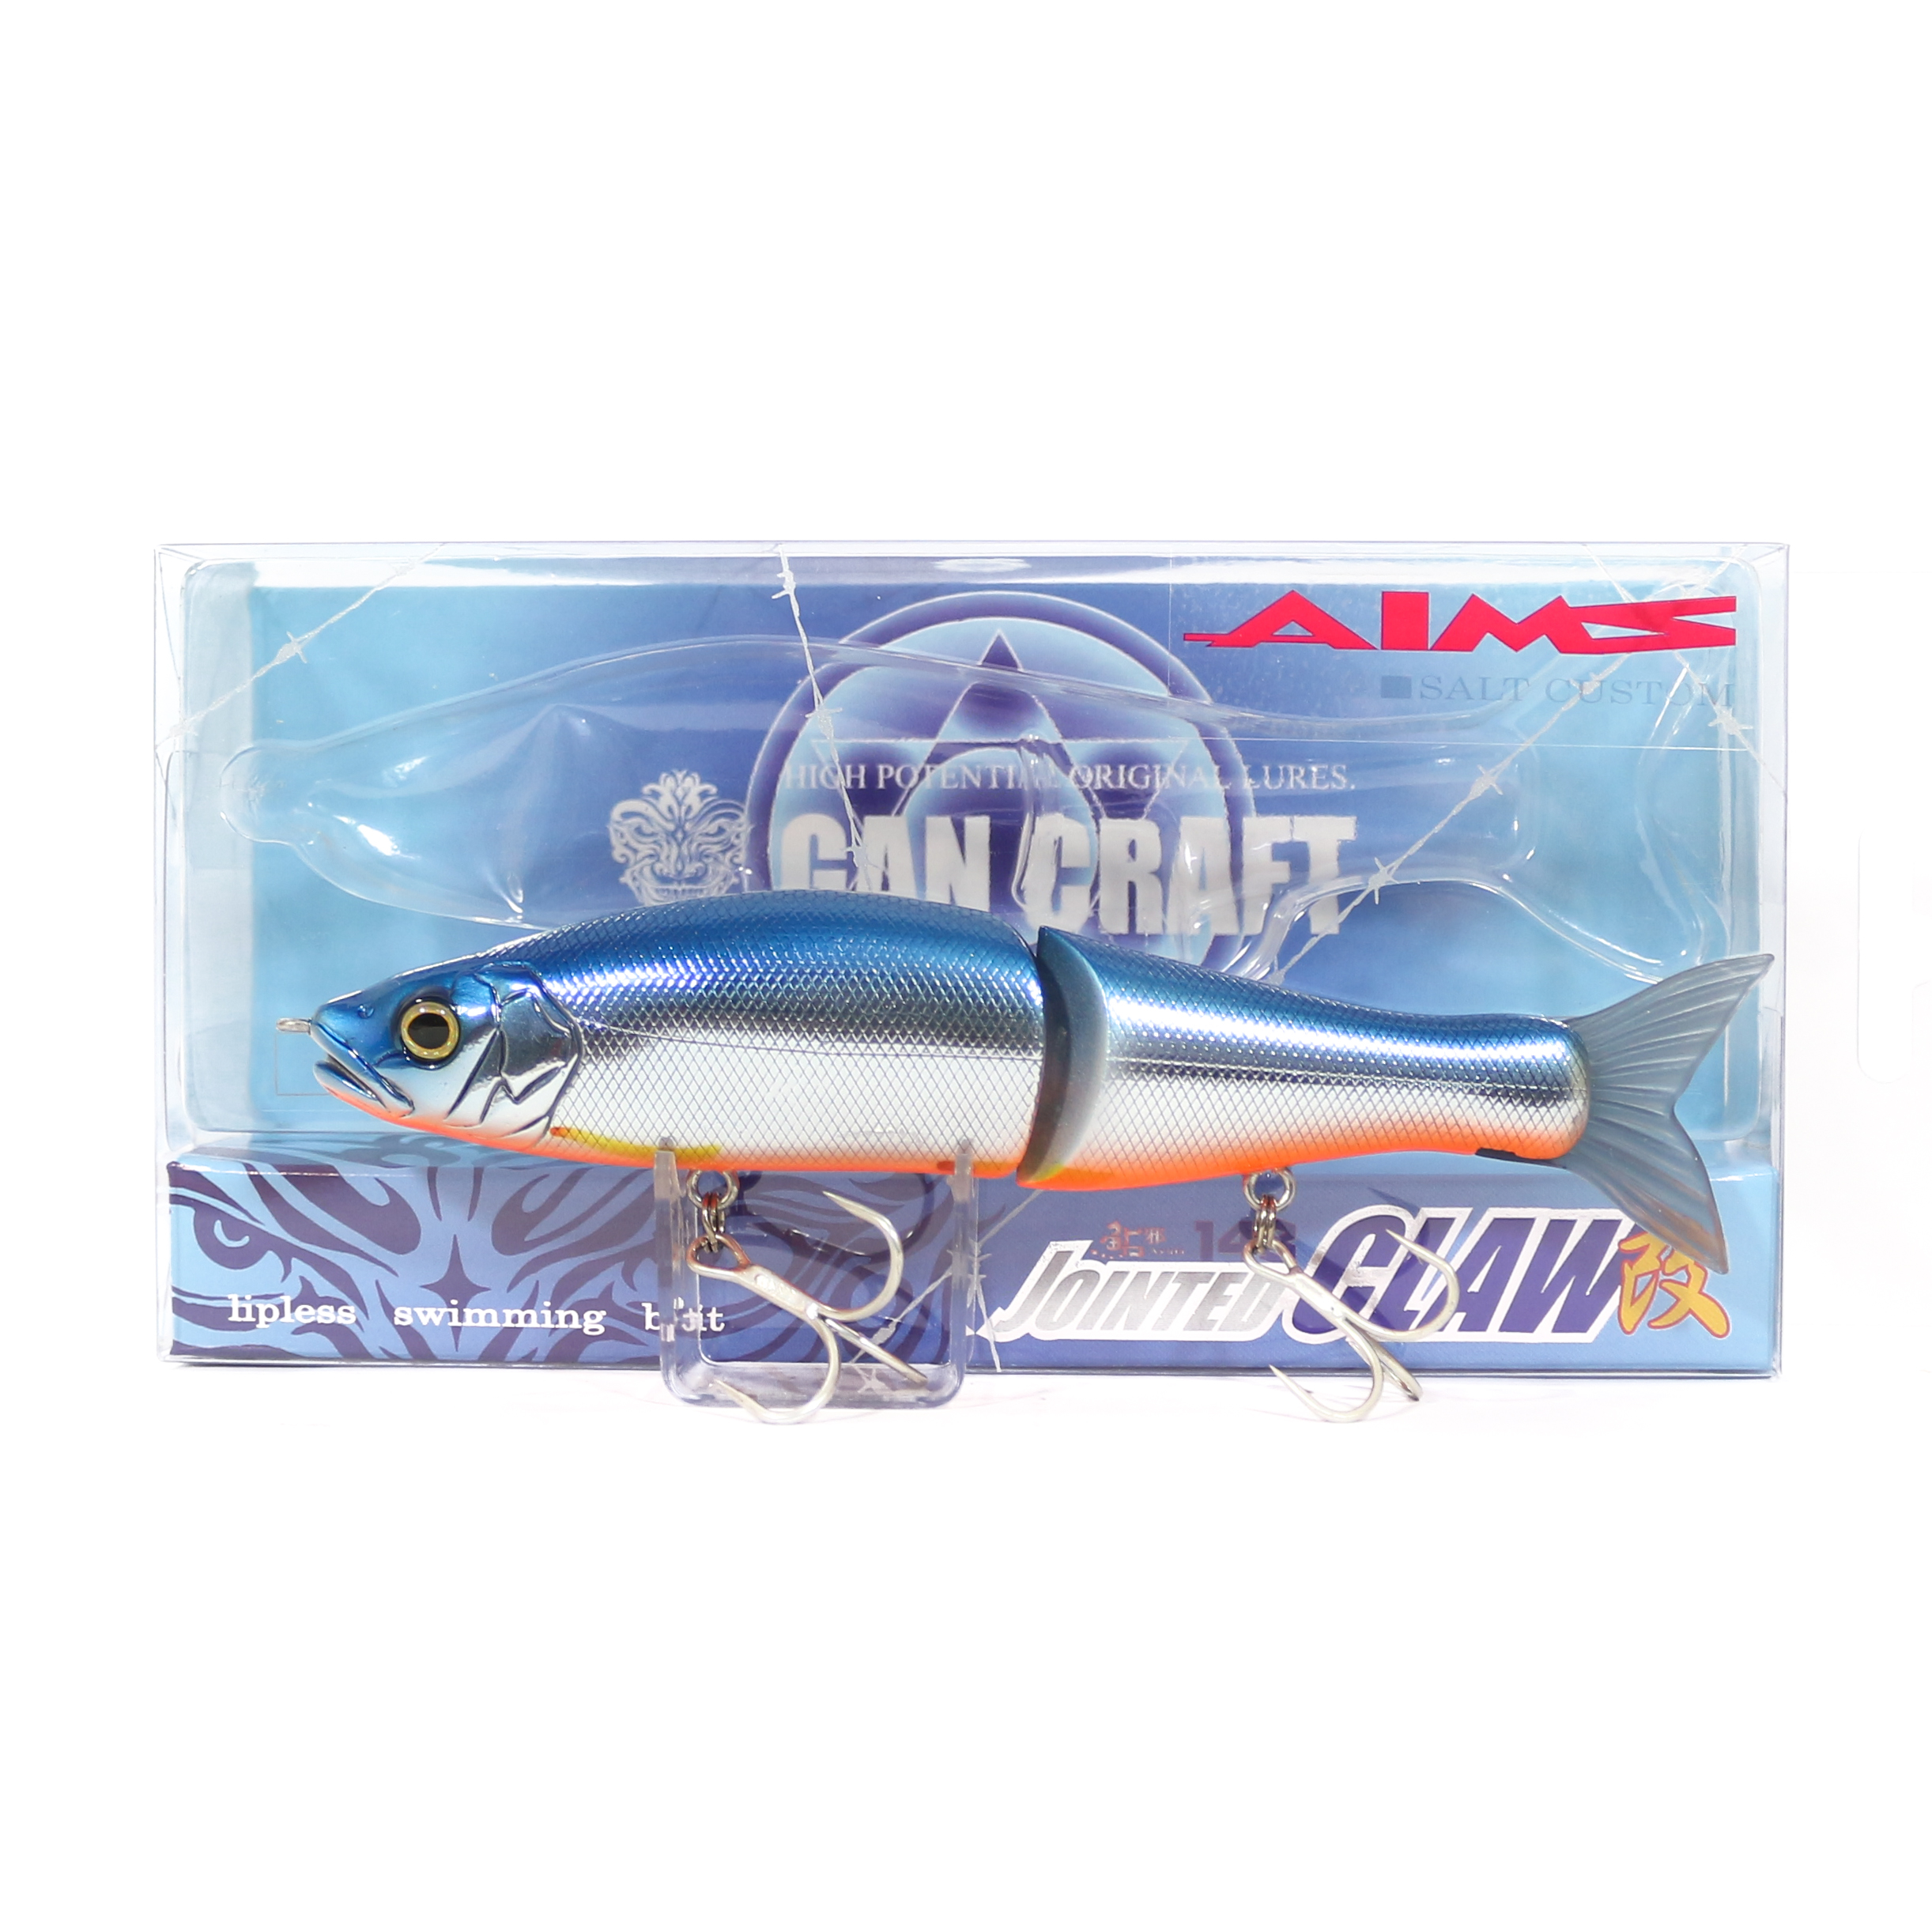 Gan Craft Jointed Claw 148S Salt Slow Sinking Jointed Lure AS-04 (0199)